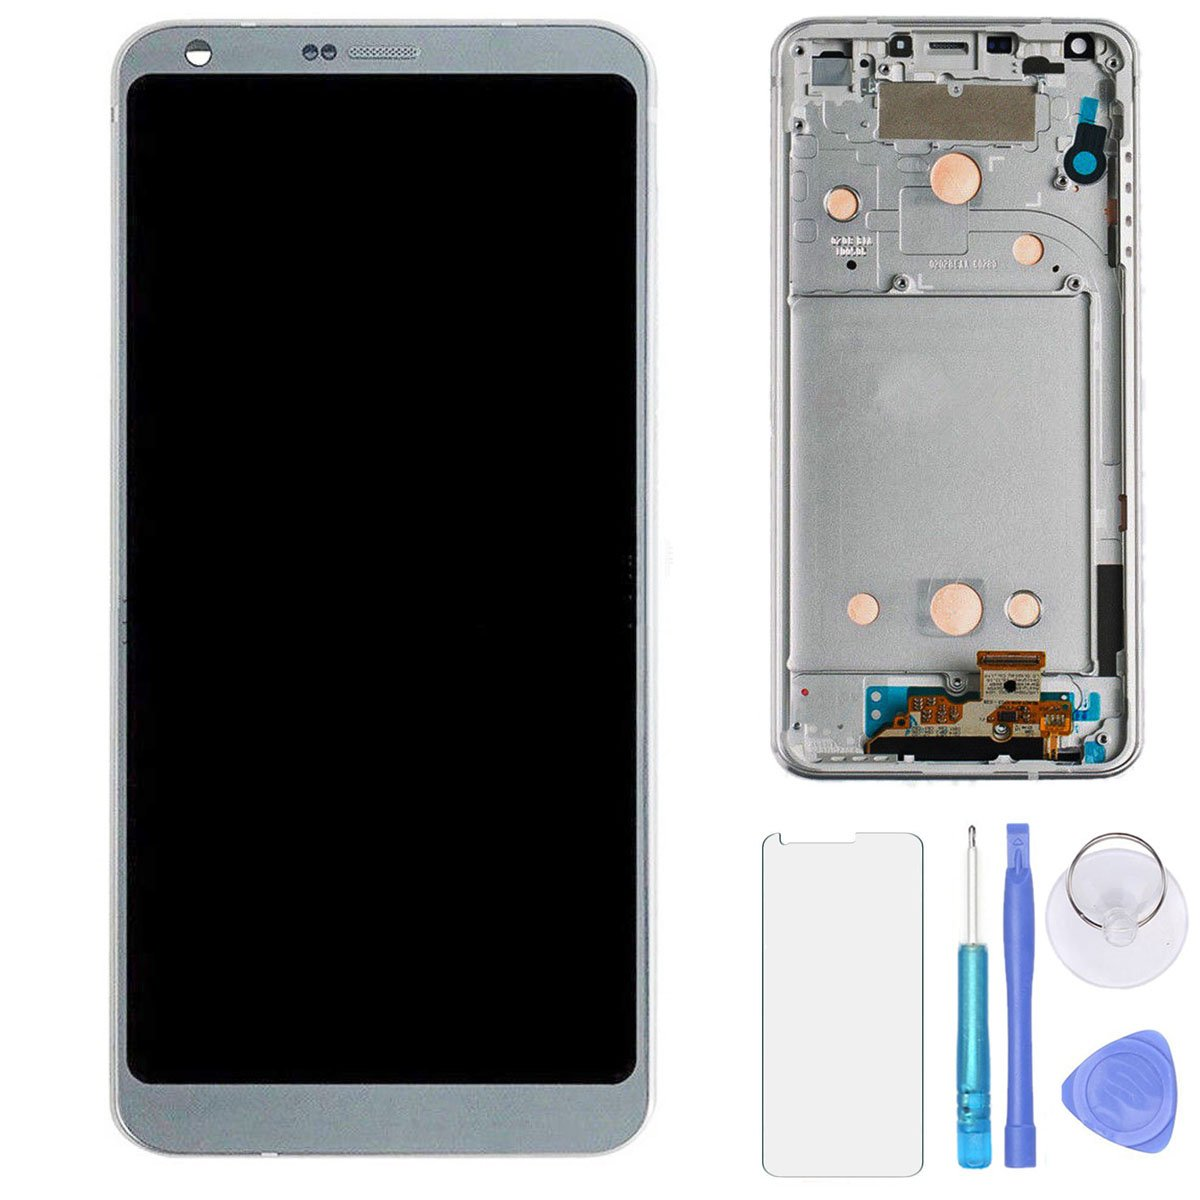 SPHENEL LCD Display And Digitizer Touch Screen Assembly With Frame For LG G6 H870 H871 H872 LS993 VS998 (Platinum)